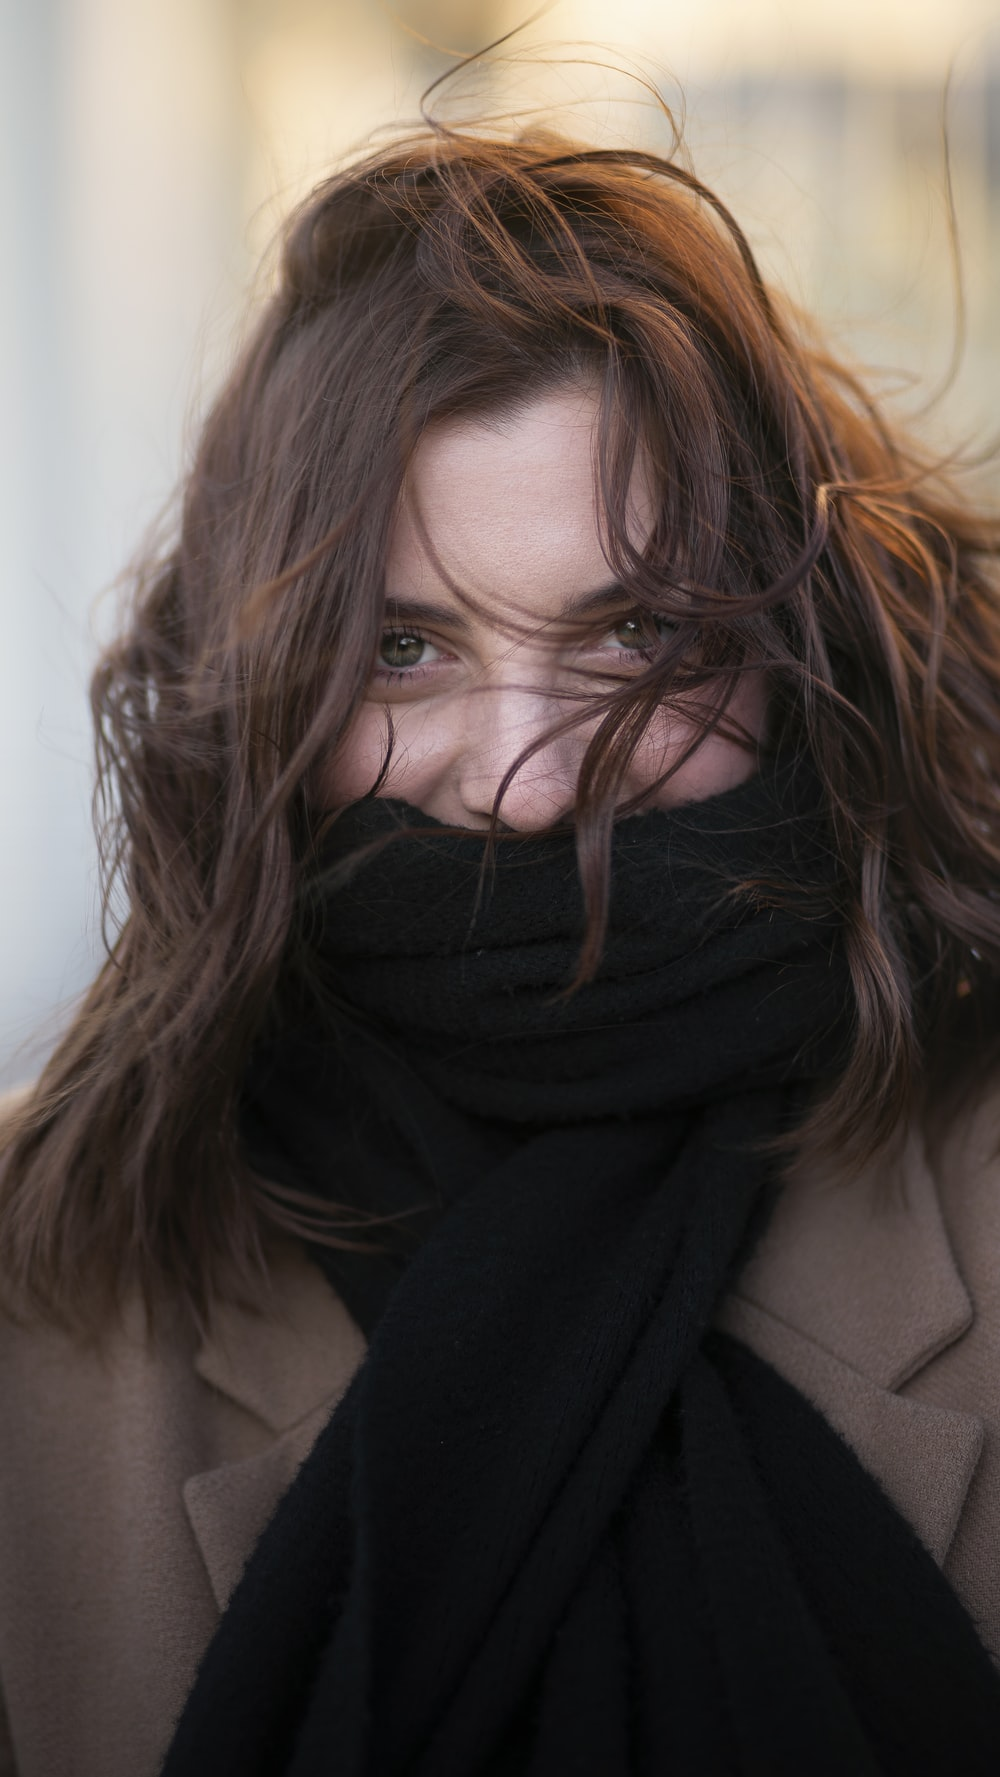 woman smiling and looking at the camera with scarf covering her mouth